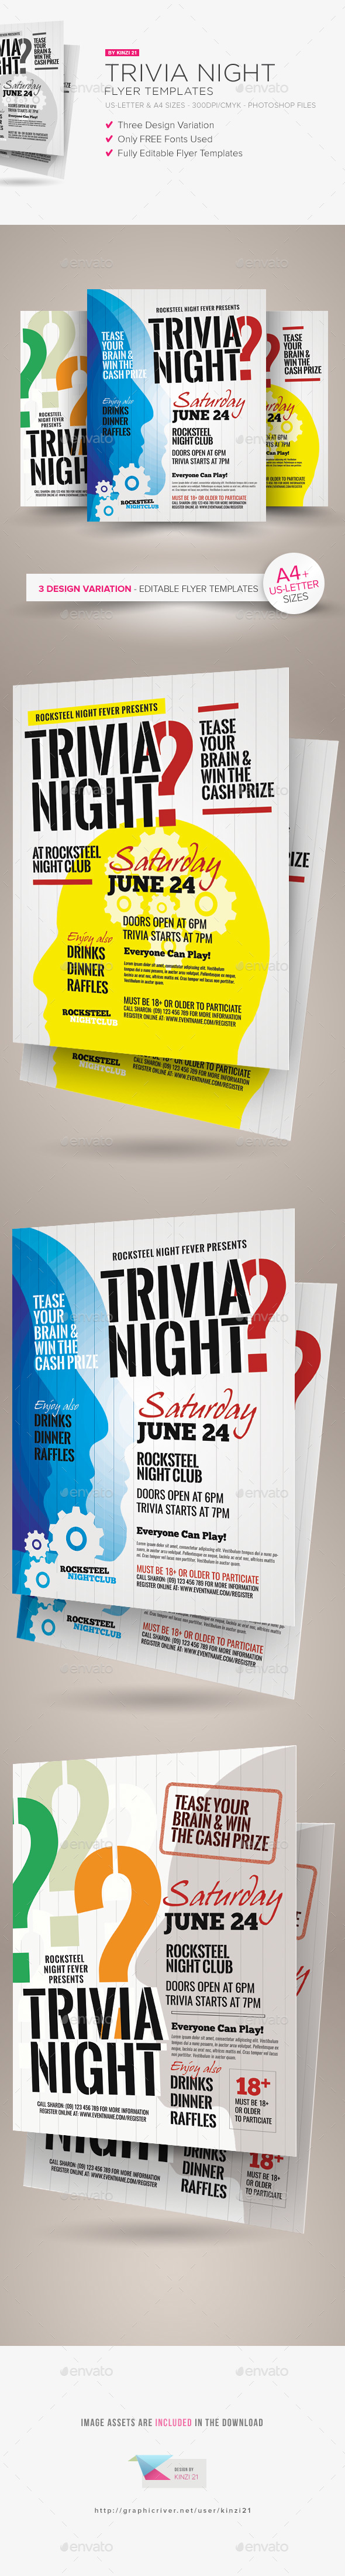 Trivia Night Flyer Templates - Clubs & Parties Events